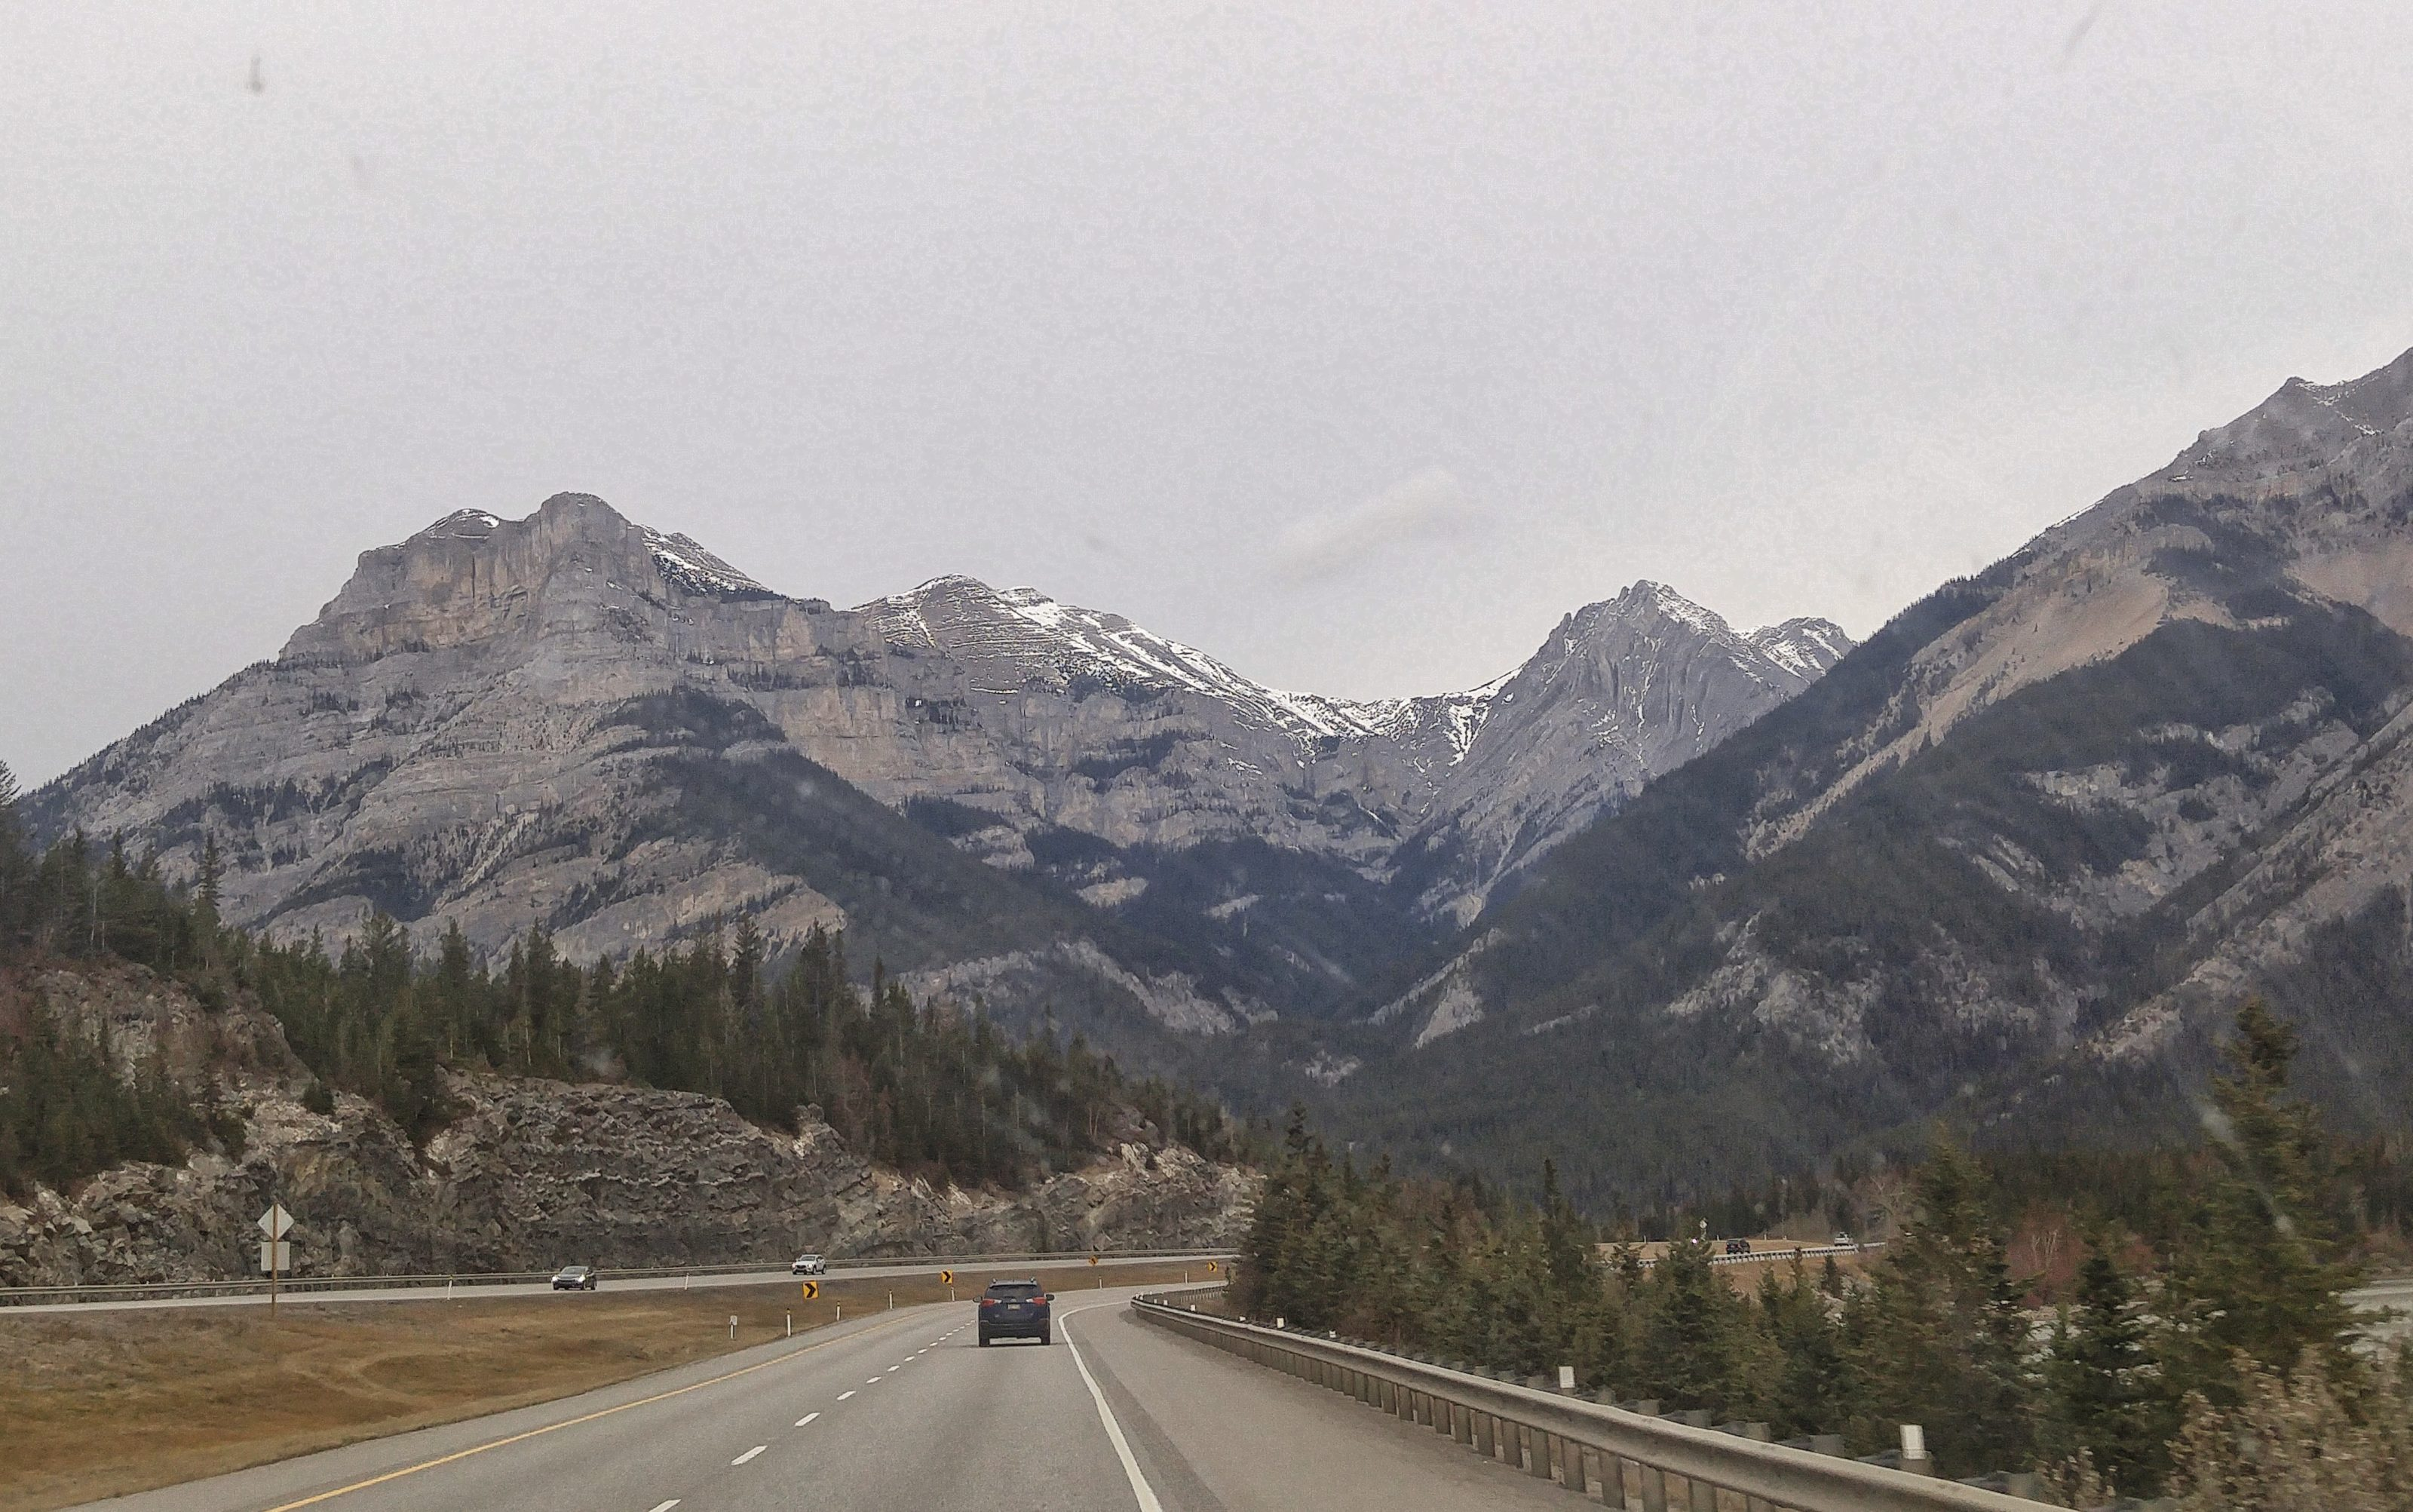 approaching rocky mountains from calgary